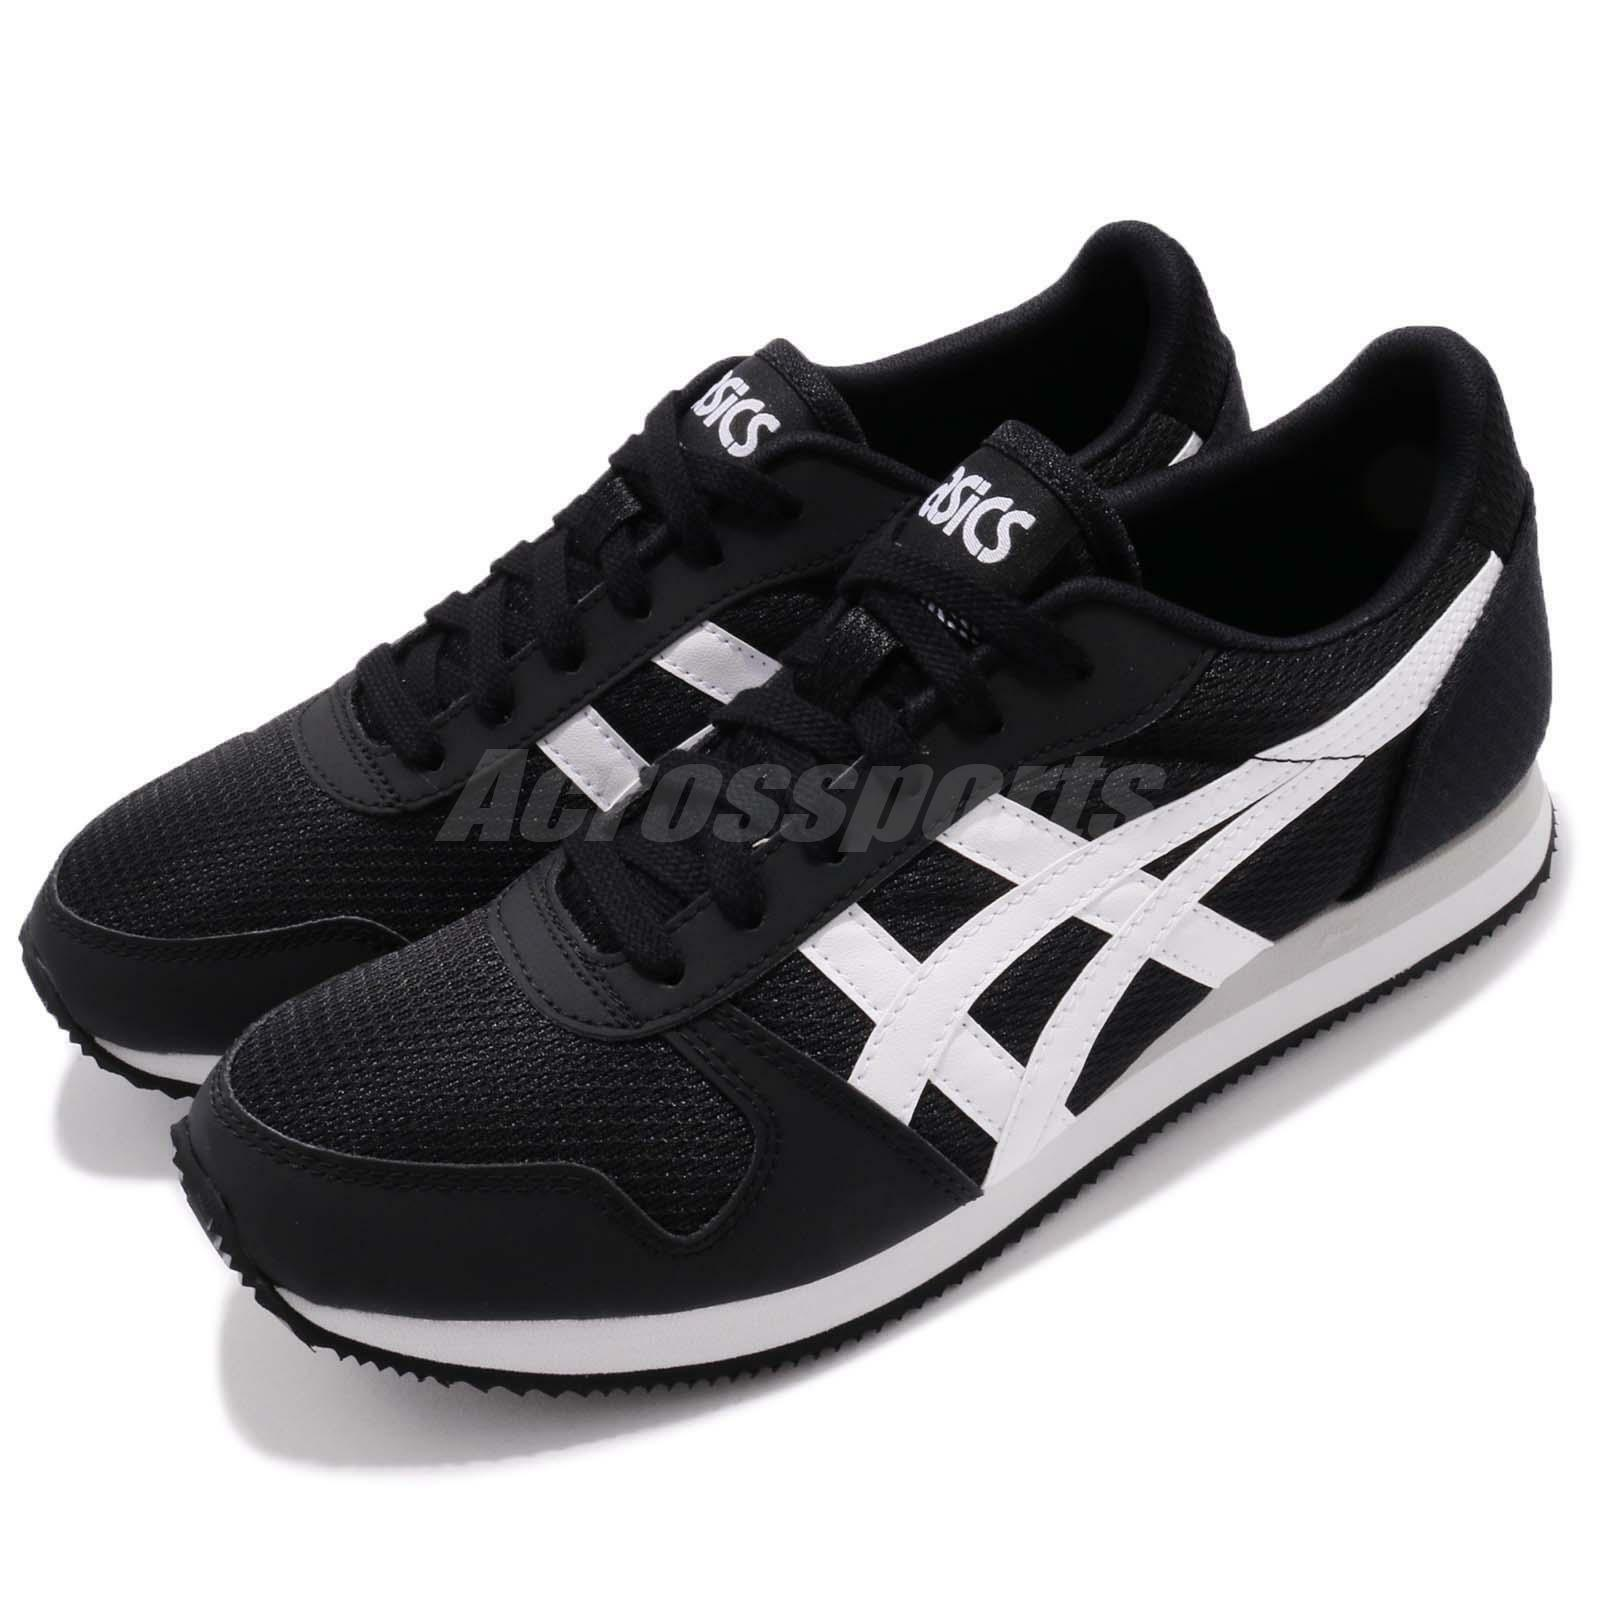 f65735992155 Asics Tiger Curreo II 2 Black White Men Running Shoes Shoes Shoes Sneaker  Trainer HN7A0-